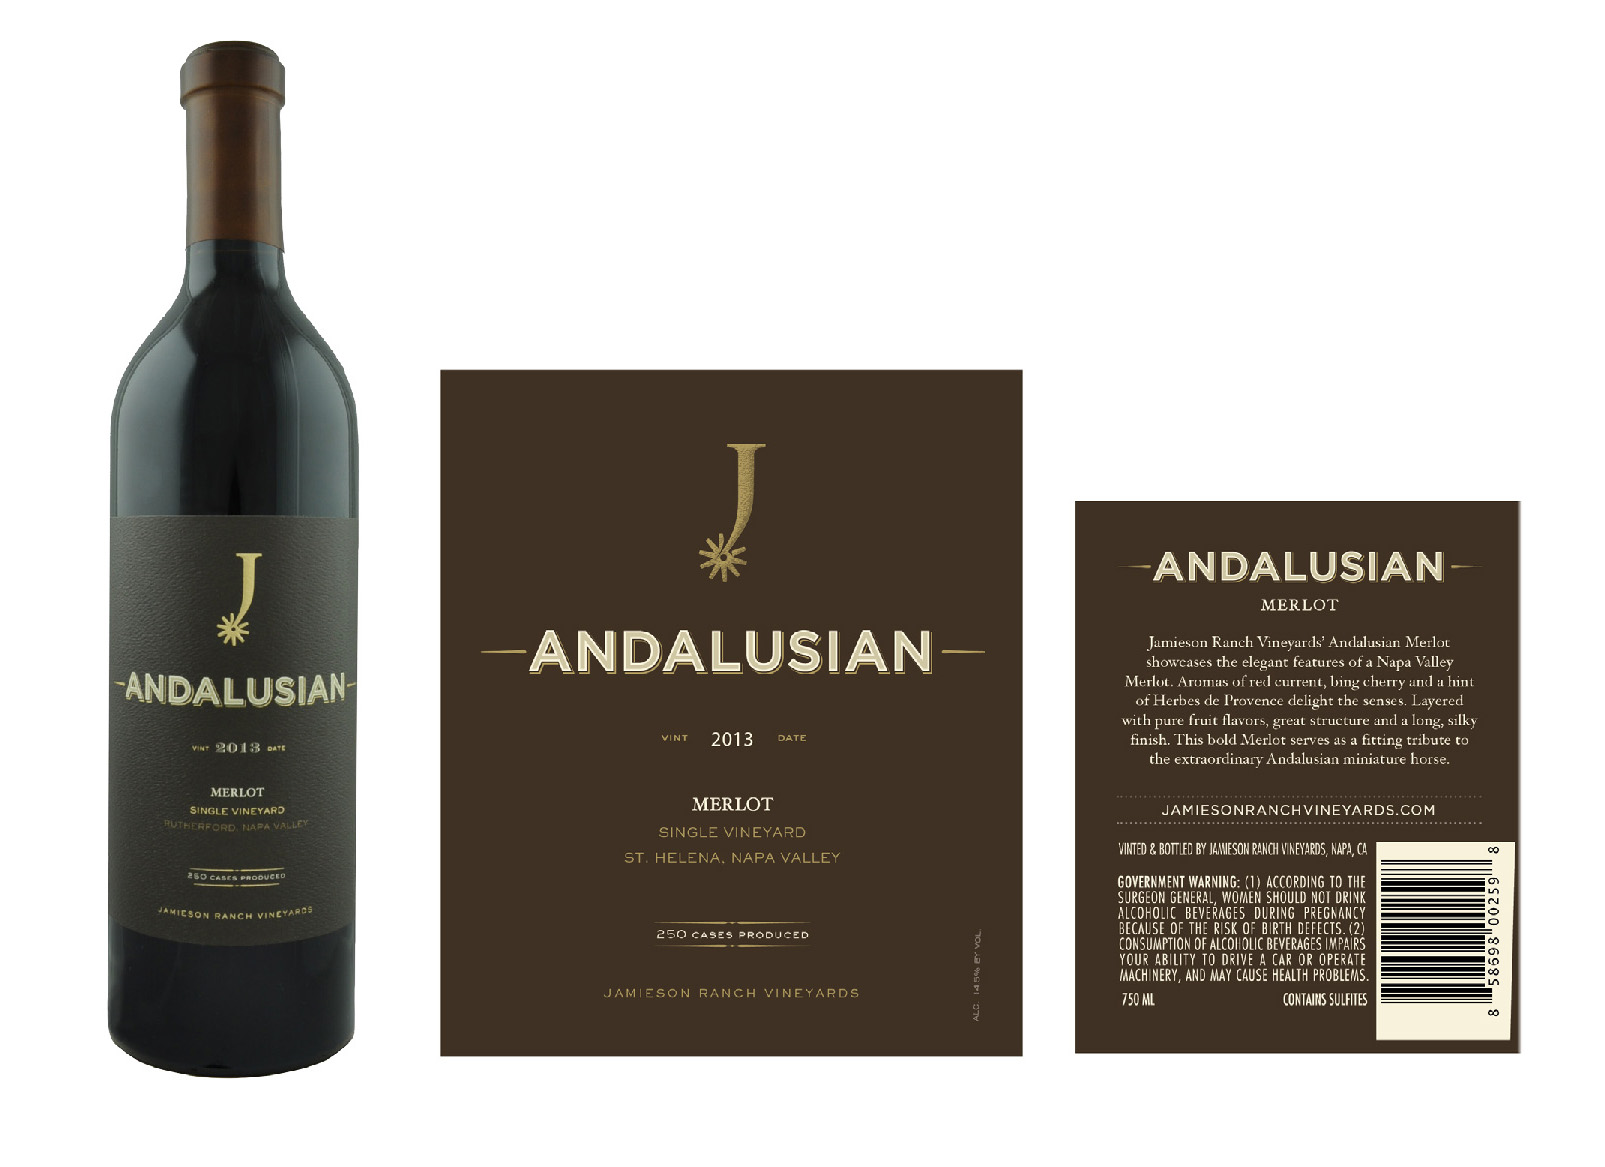 Jamieson Ranch Vineyards Andalusian package design